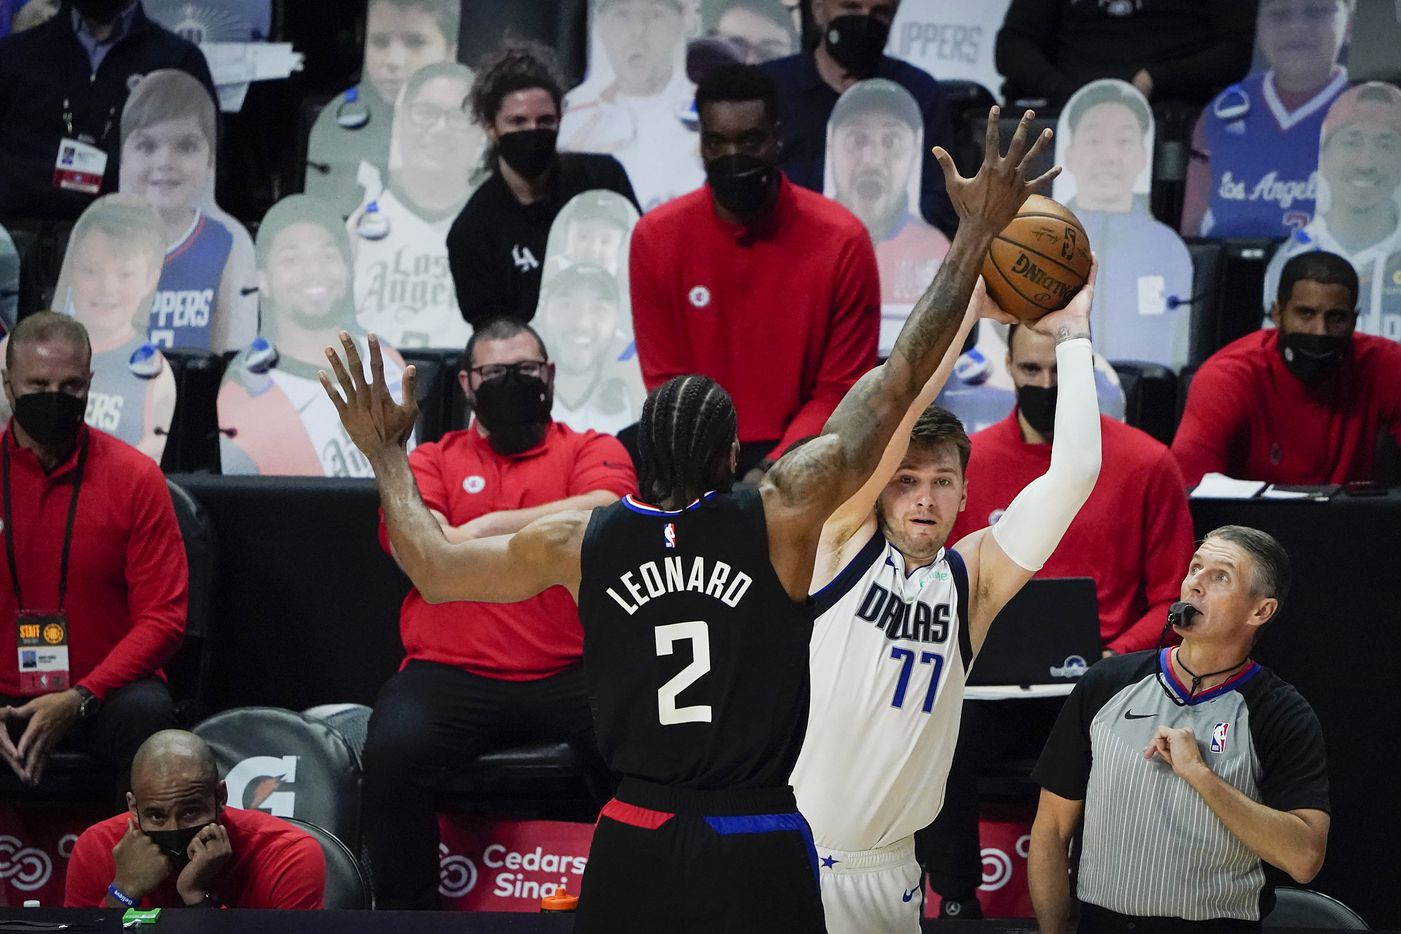 Dallas Mavericks guard Luka Doncic (77) inbounds the ball past LA Clippers forward Kawhi Leonard (2) during the second half of an NBA playoff basketball game at Staples Center on Wednesday, May 26, 2021, in Los Angeles. The Mavericks won the game 127-121.